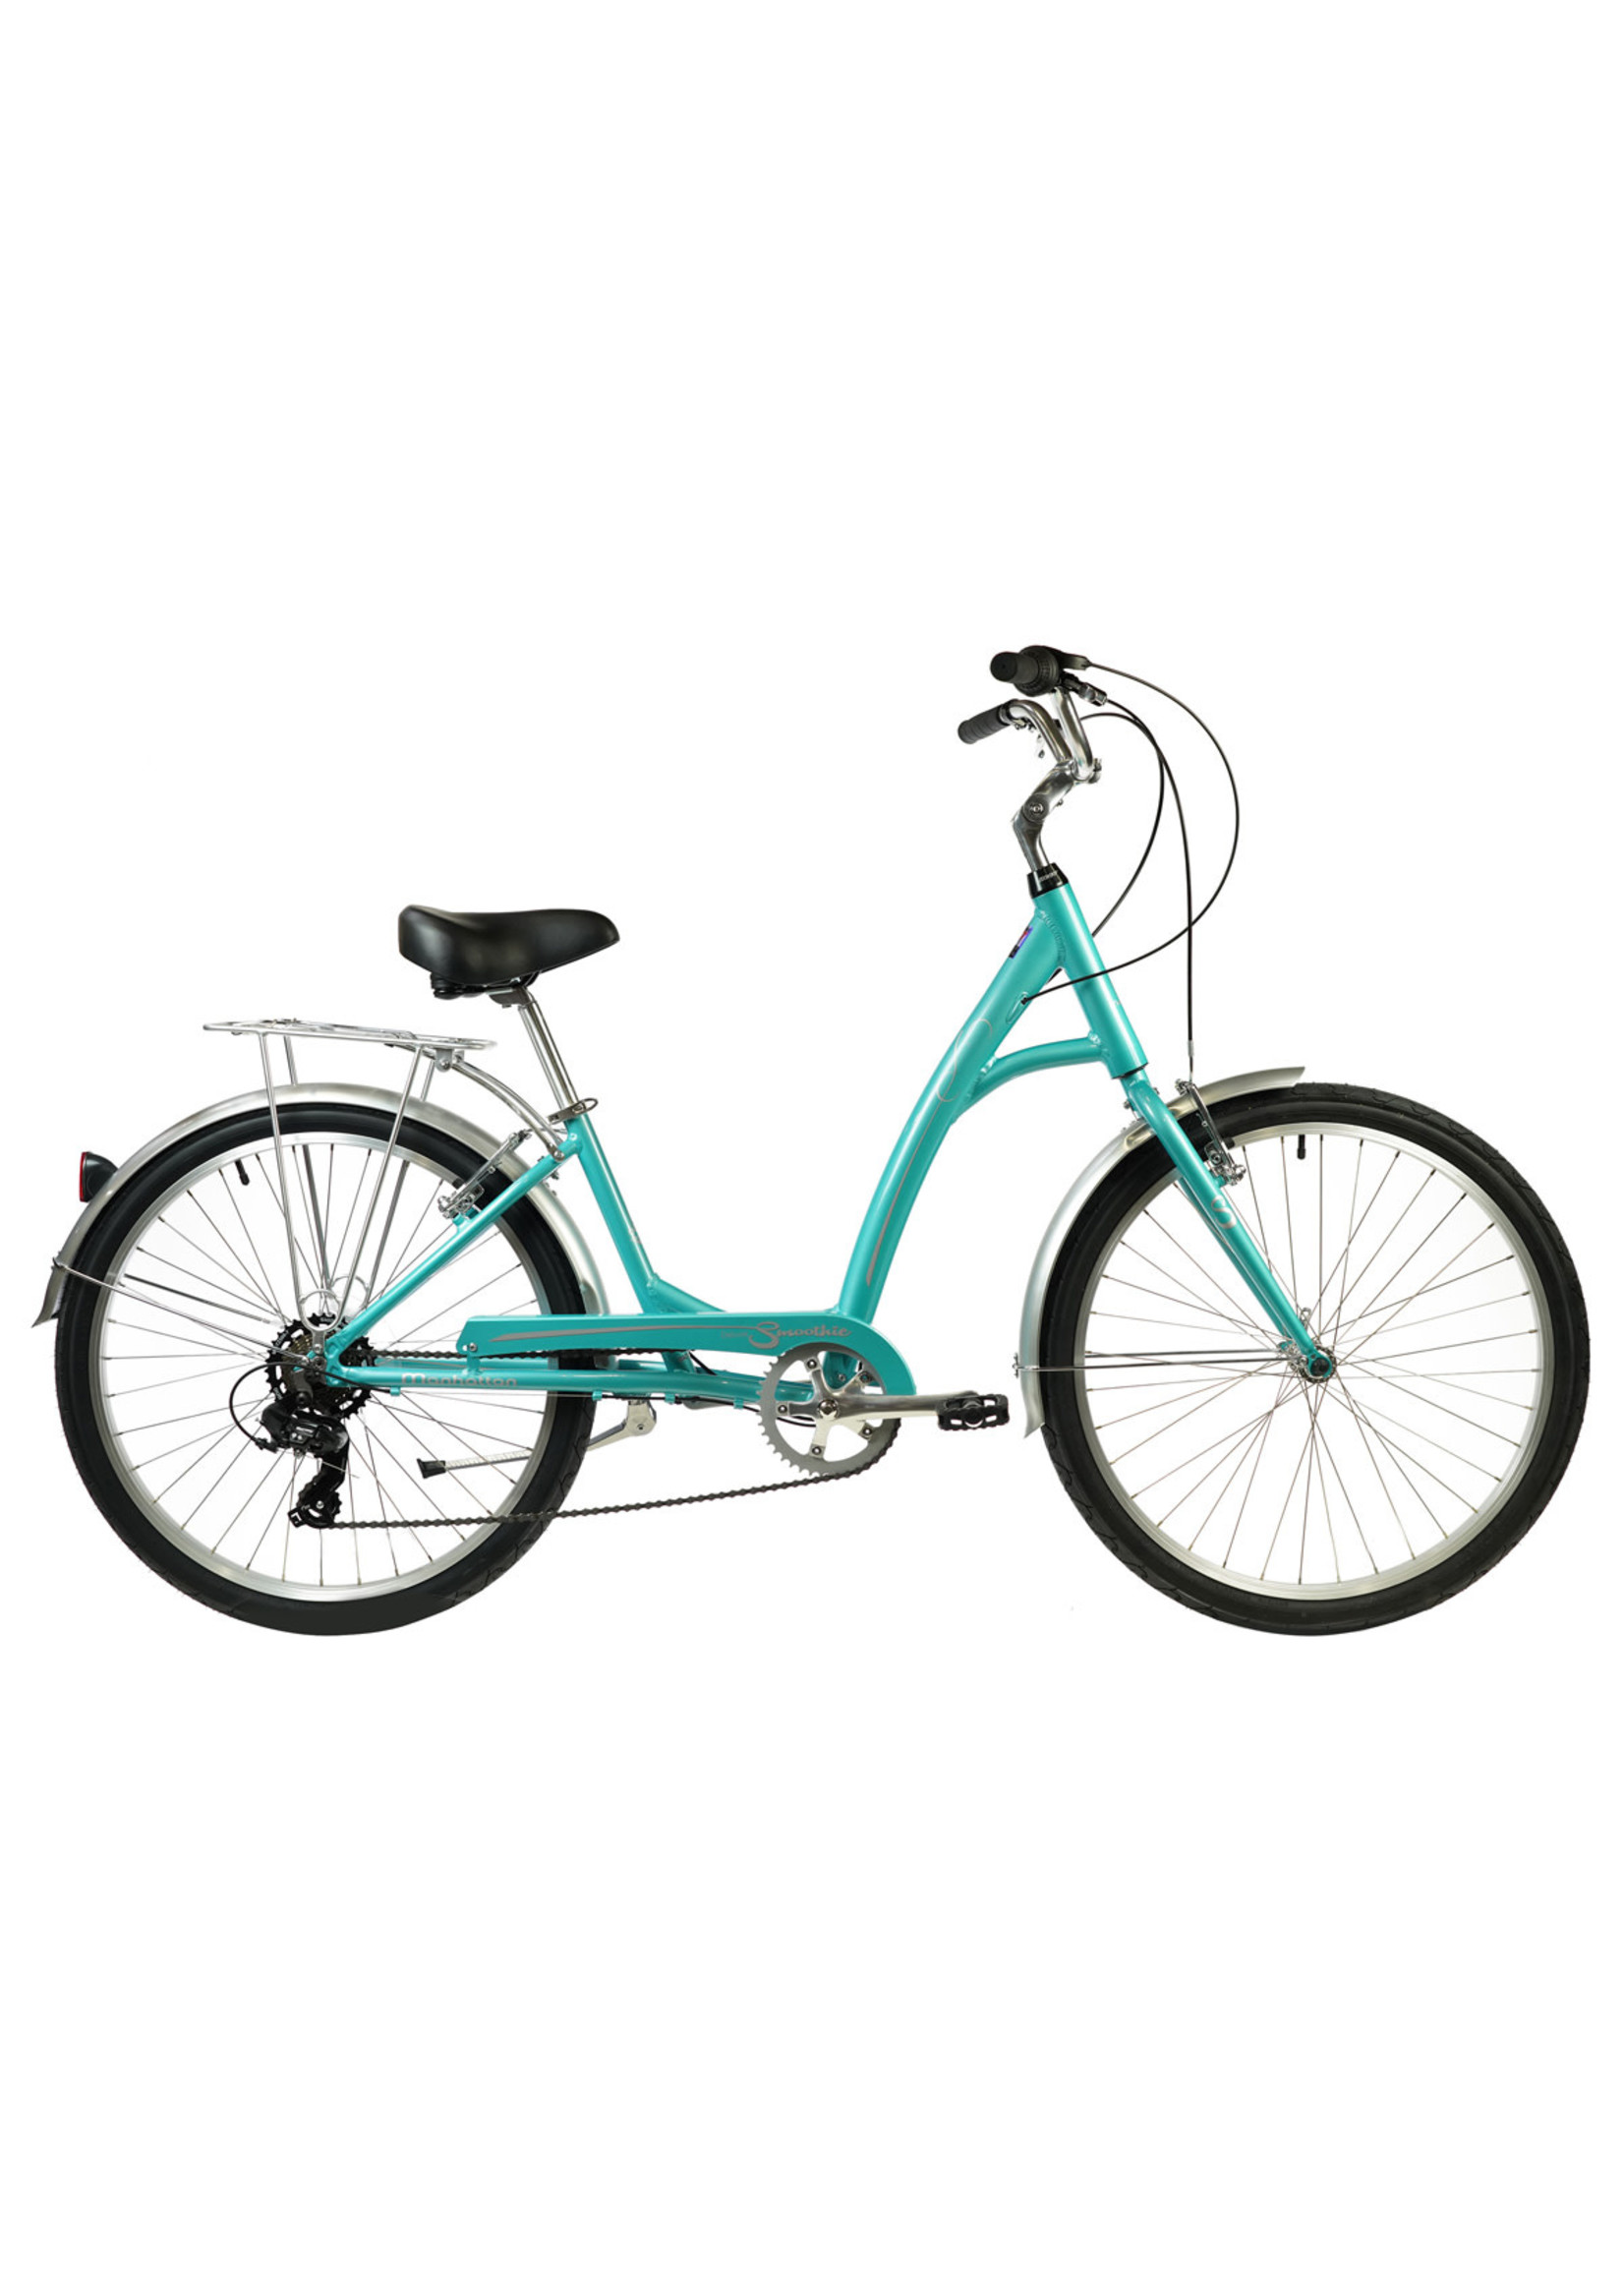 KHS KHS- Smoothie, 21, W's Deluxe, Teal, 15